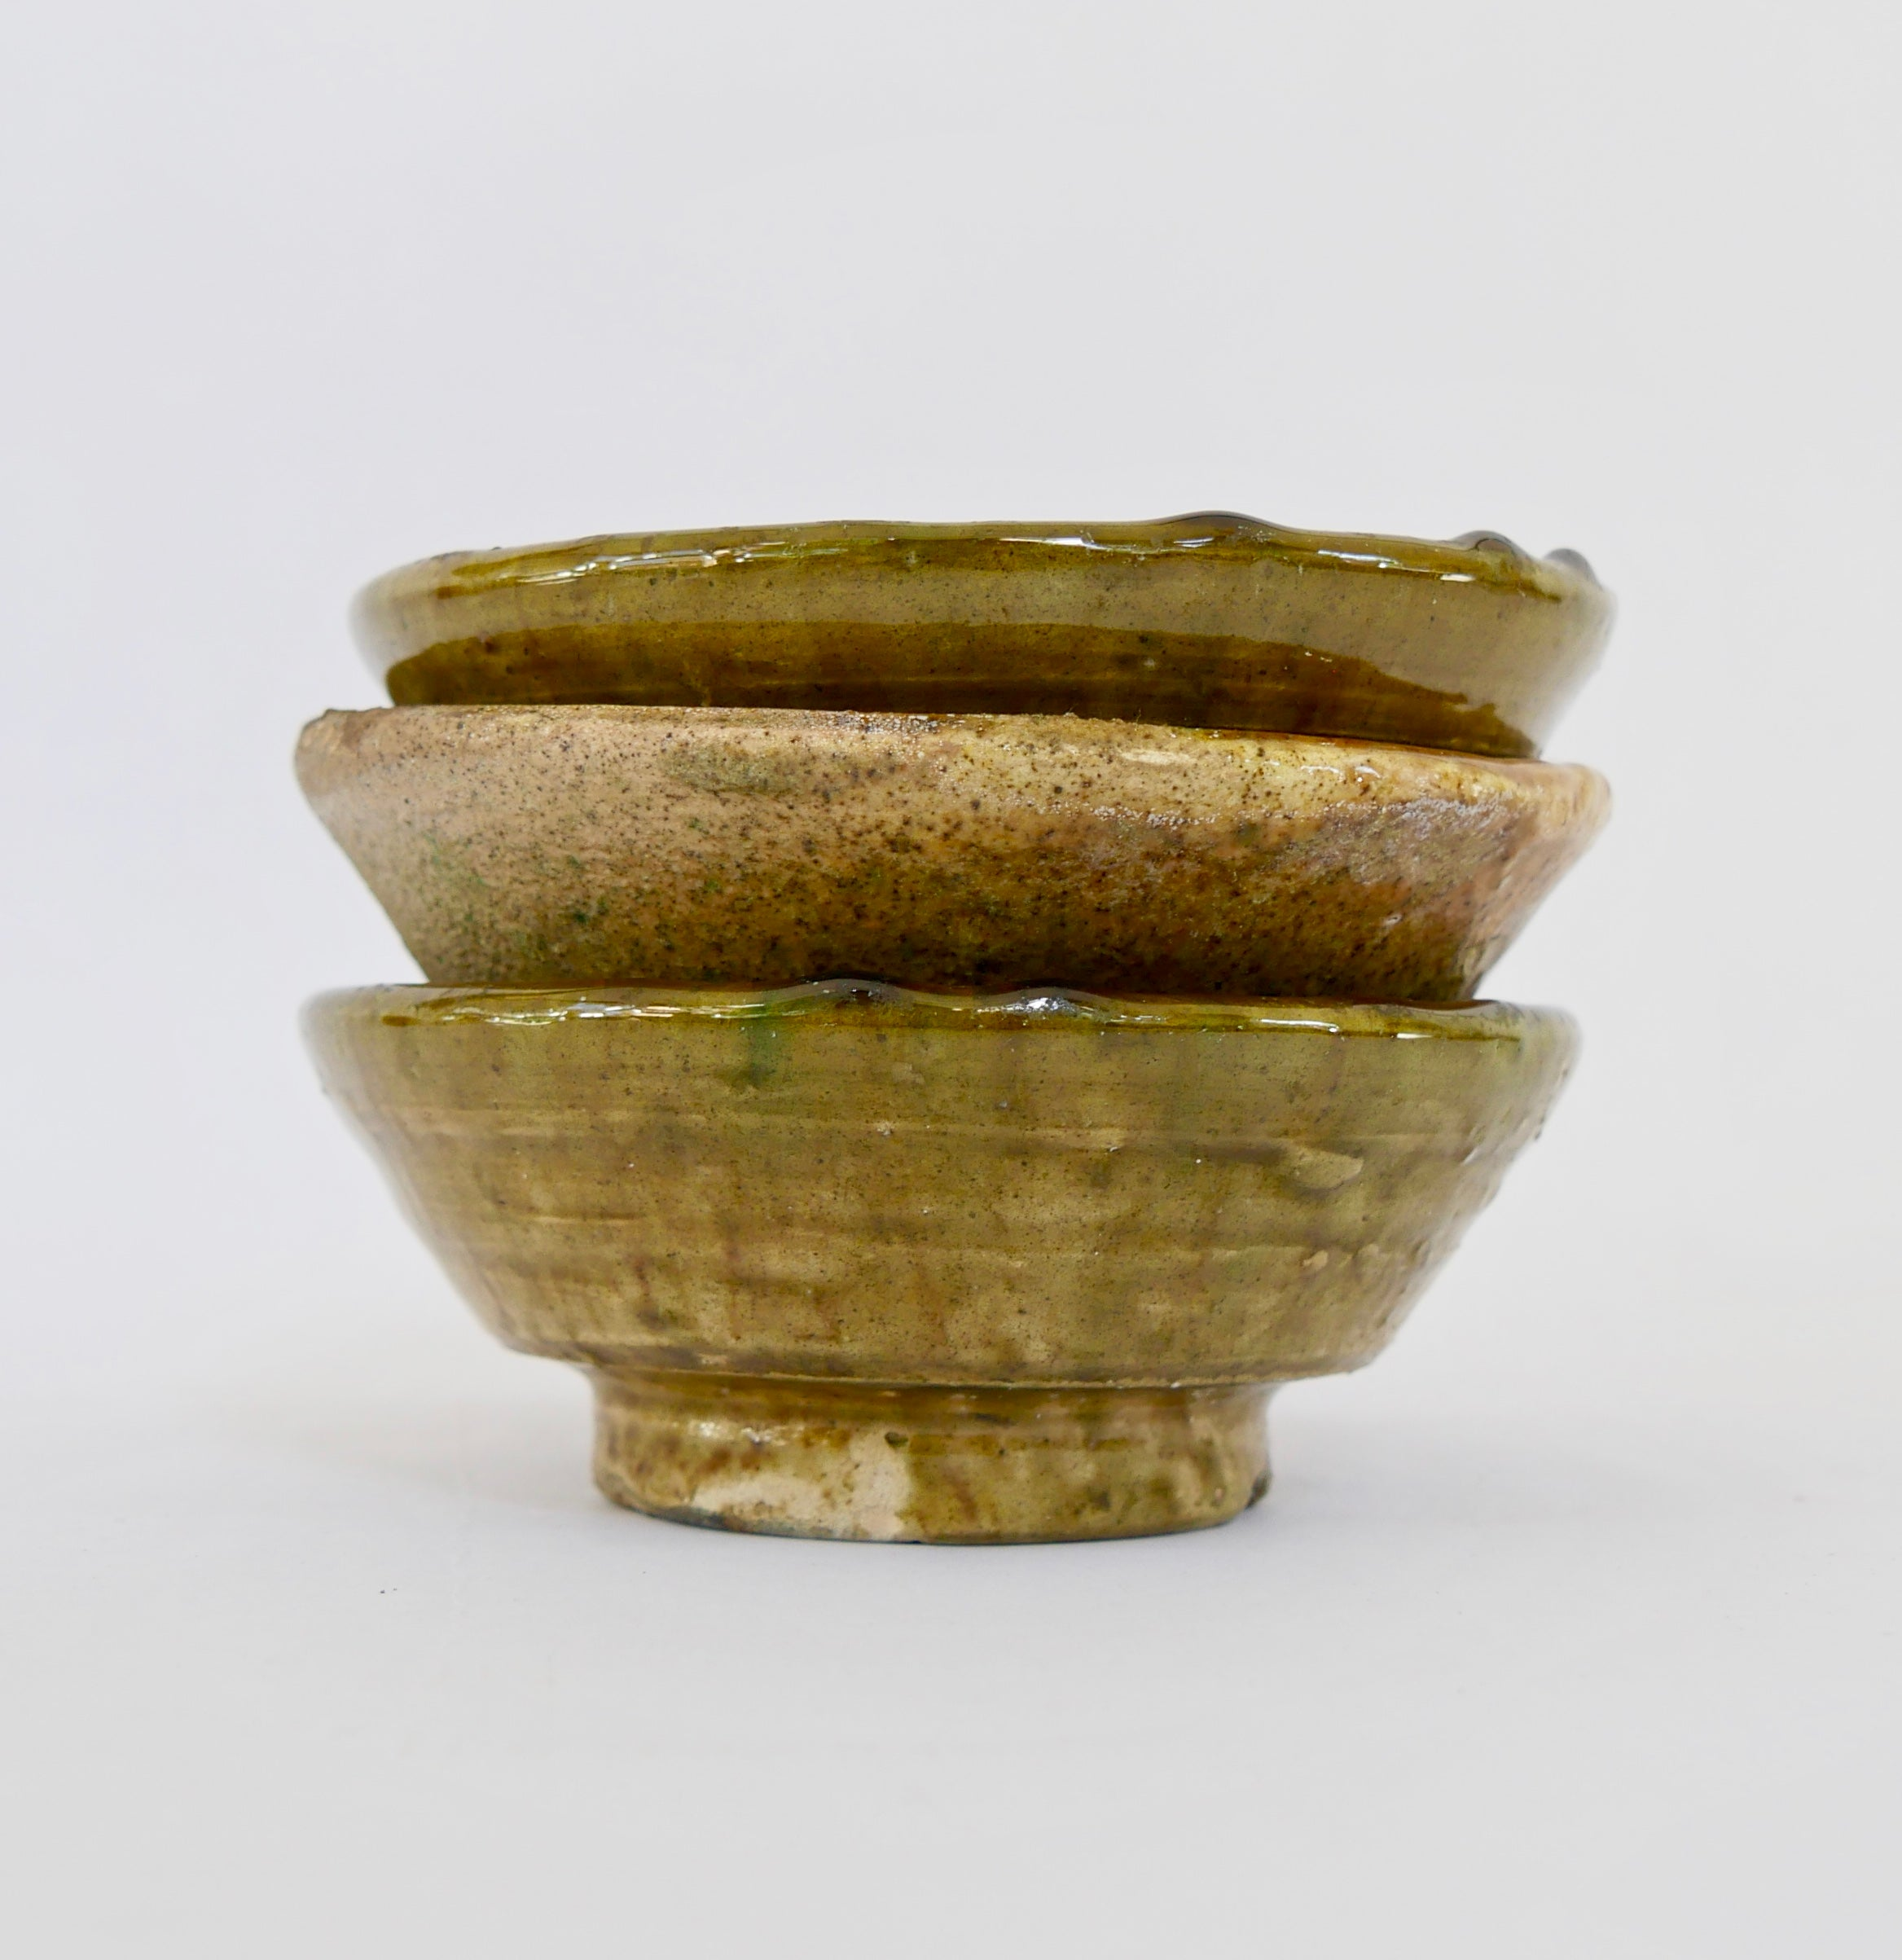 Golden Tamegroute Pottery - Small Bowl